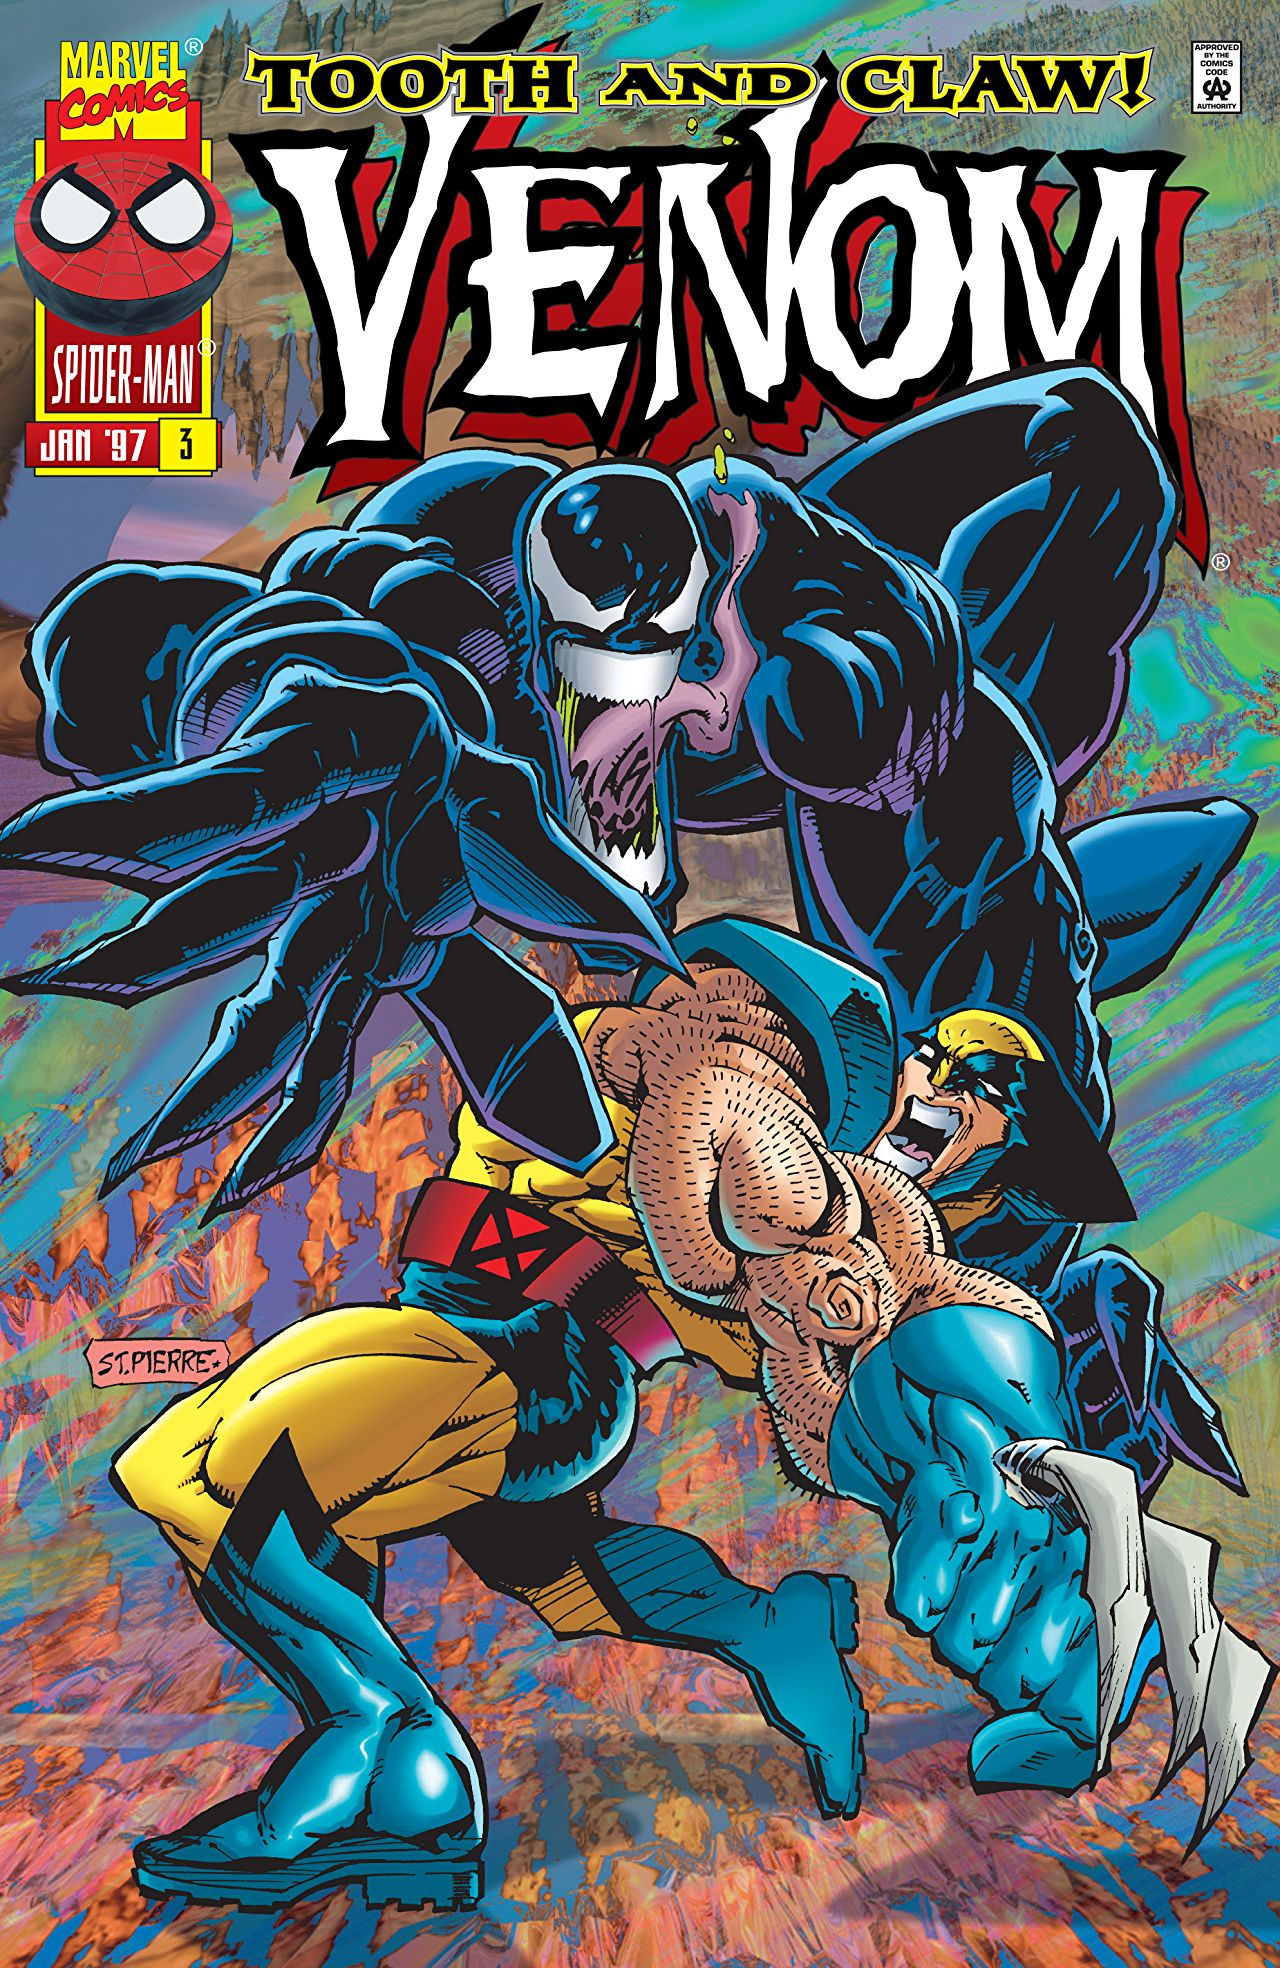 Venom: Tooth and Claw Vol 1 3